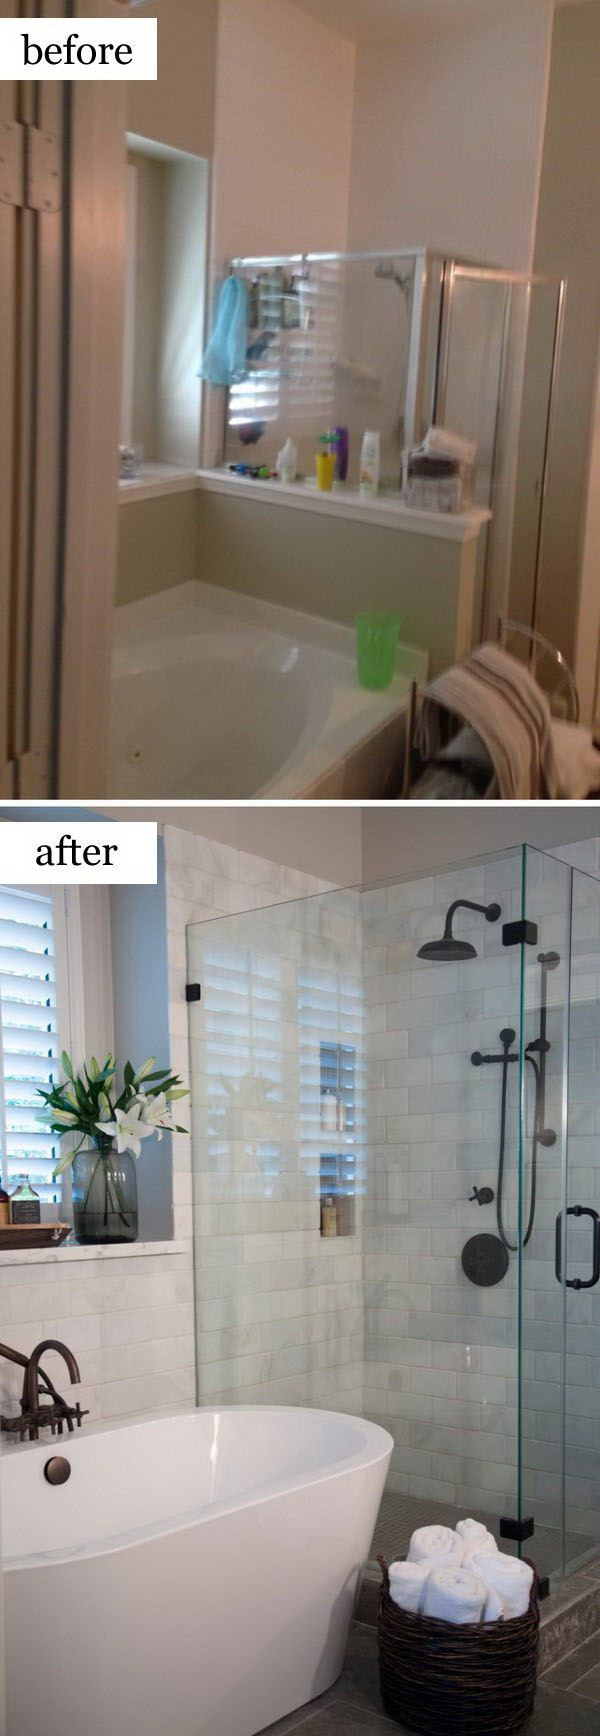 Diy Bathroom Remodel List best 20+ small bathroom remodeling ideas on pinterest | half